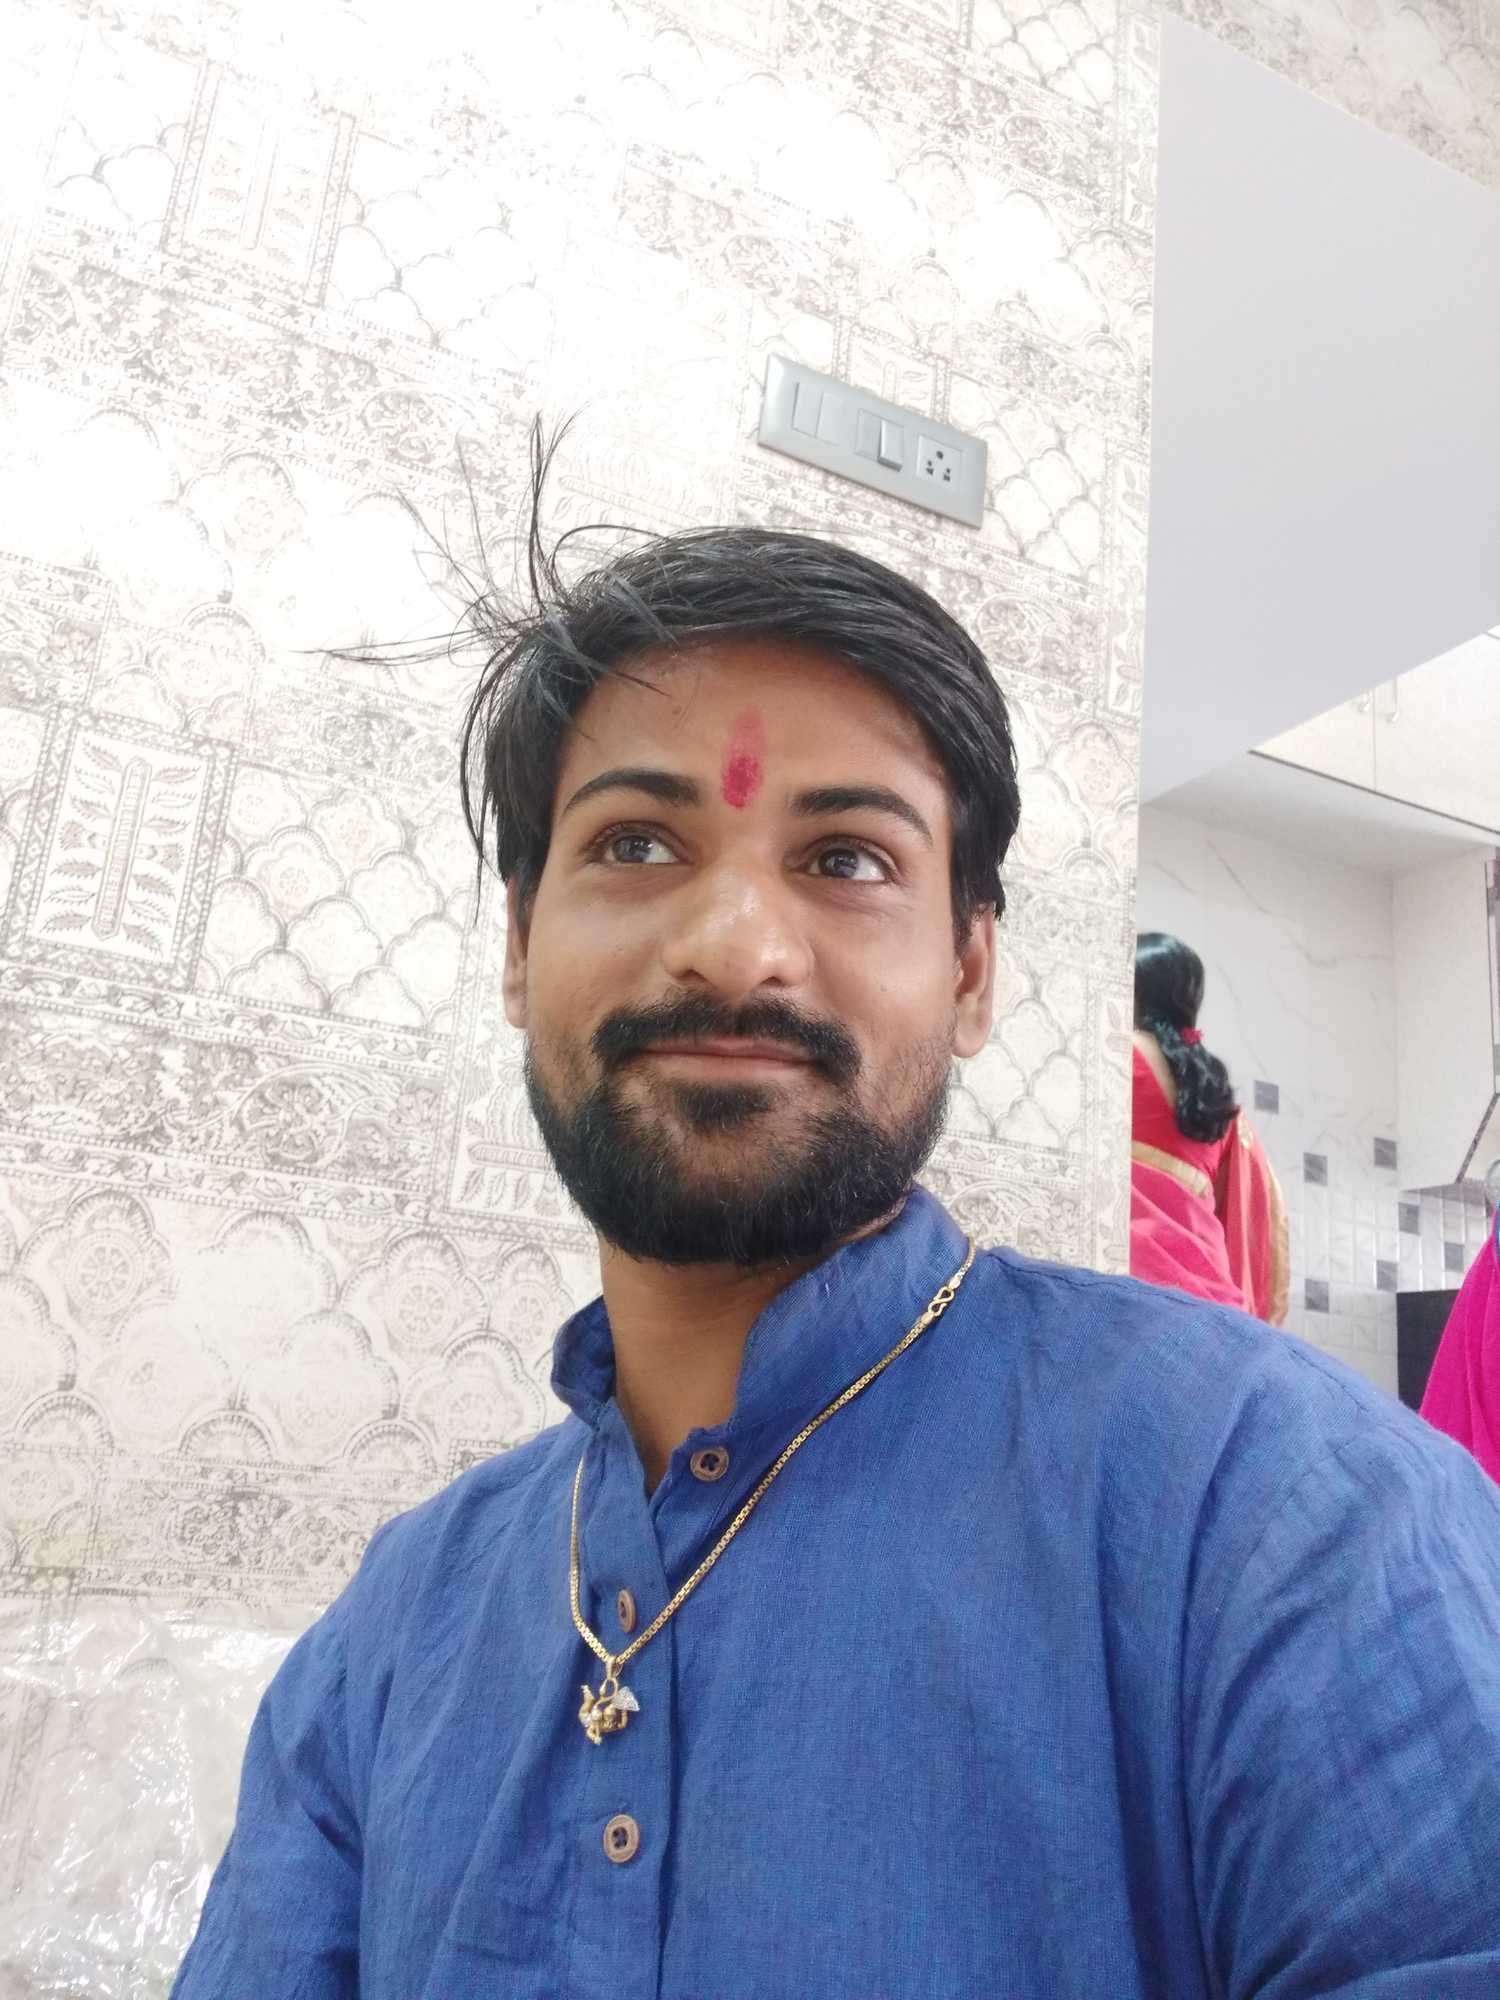 Top 100 Pandits For Puja in Mumbai - Best Purohit for Puja - Justdial